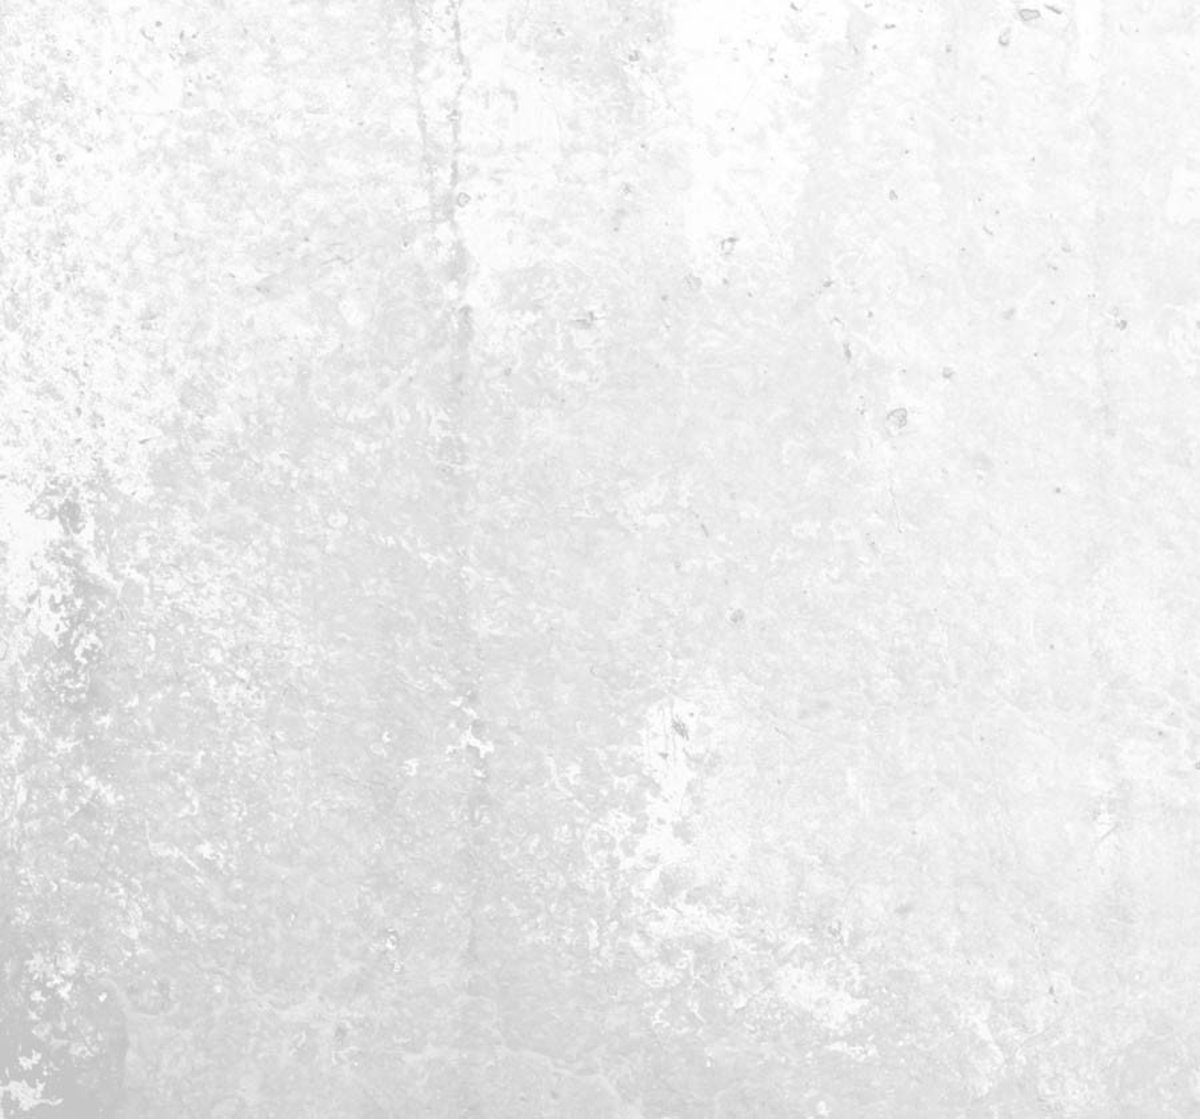 Distressed white cement or concrete wall texture background Sample